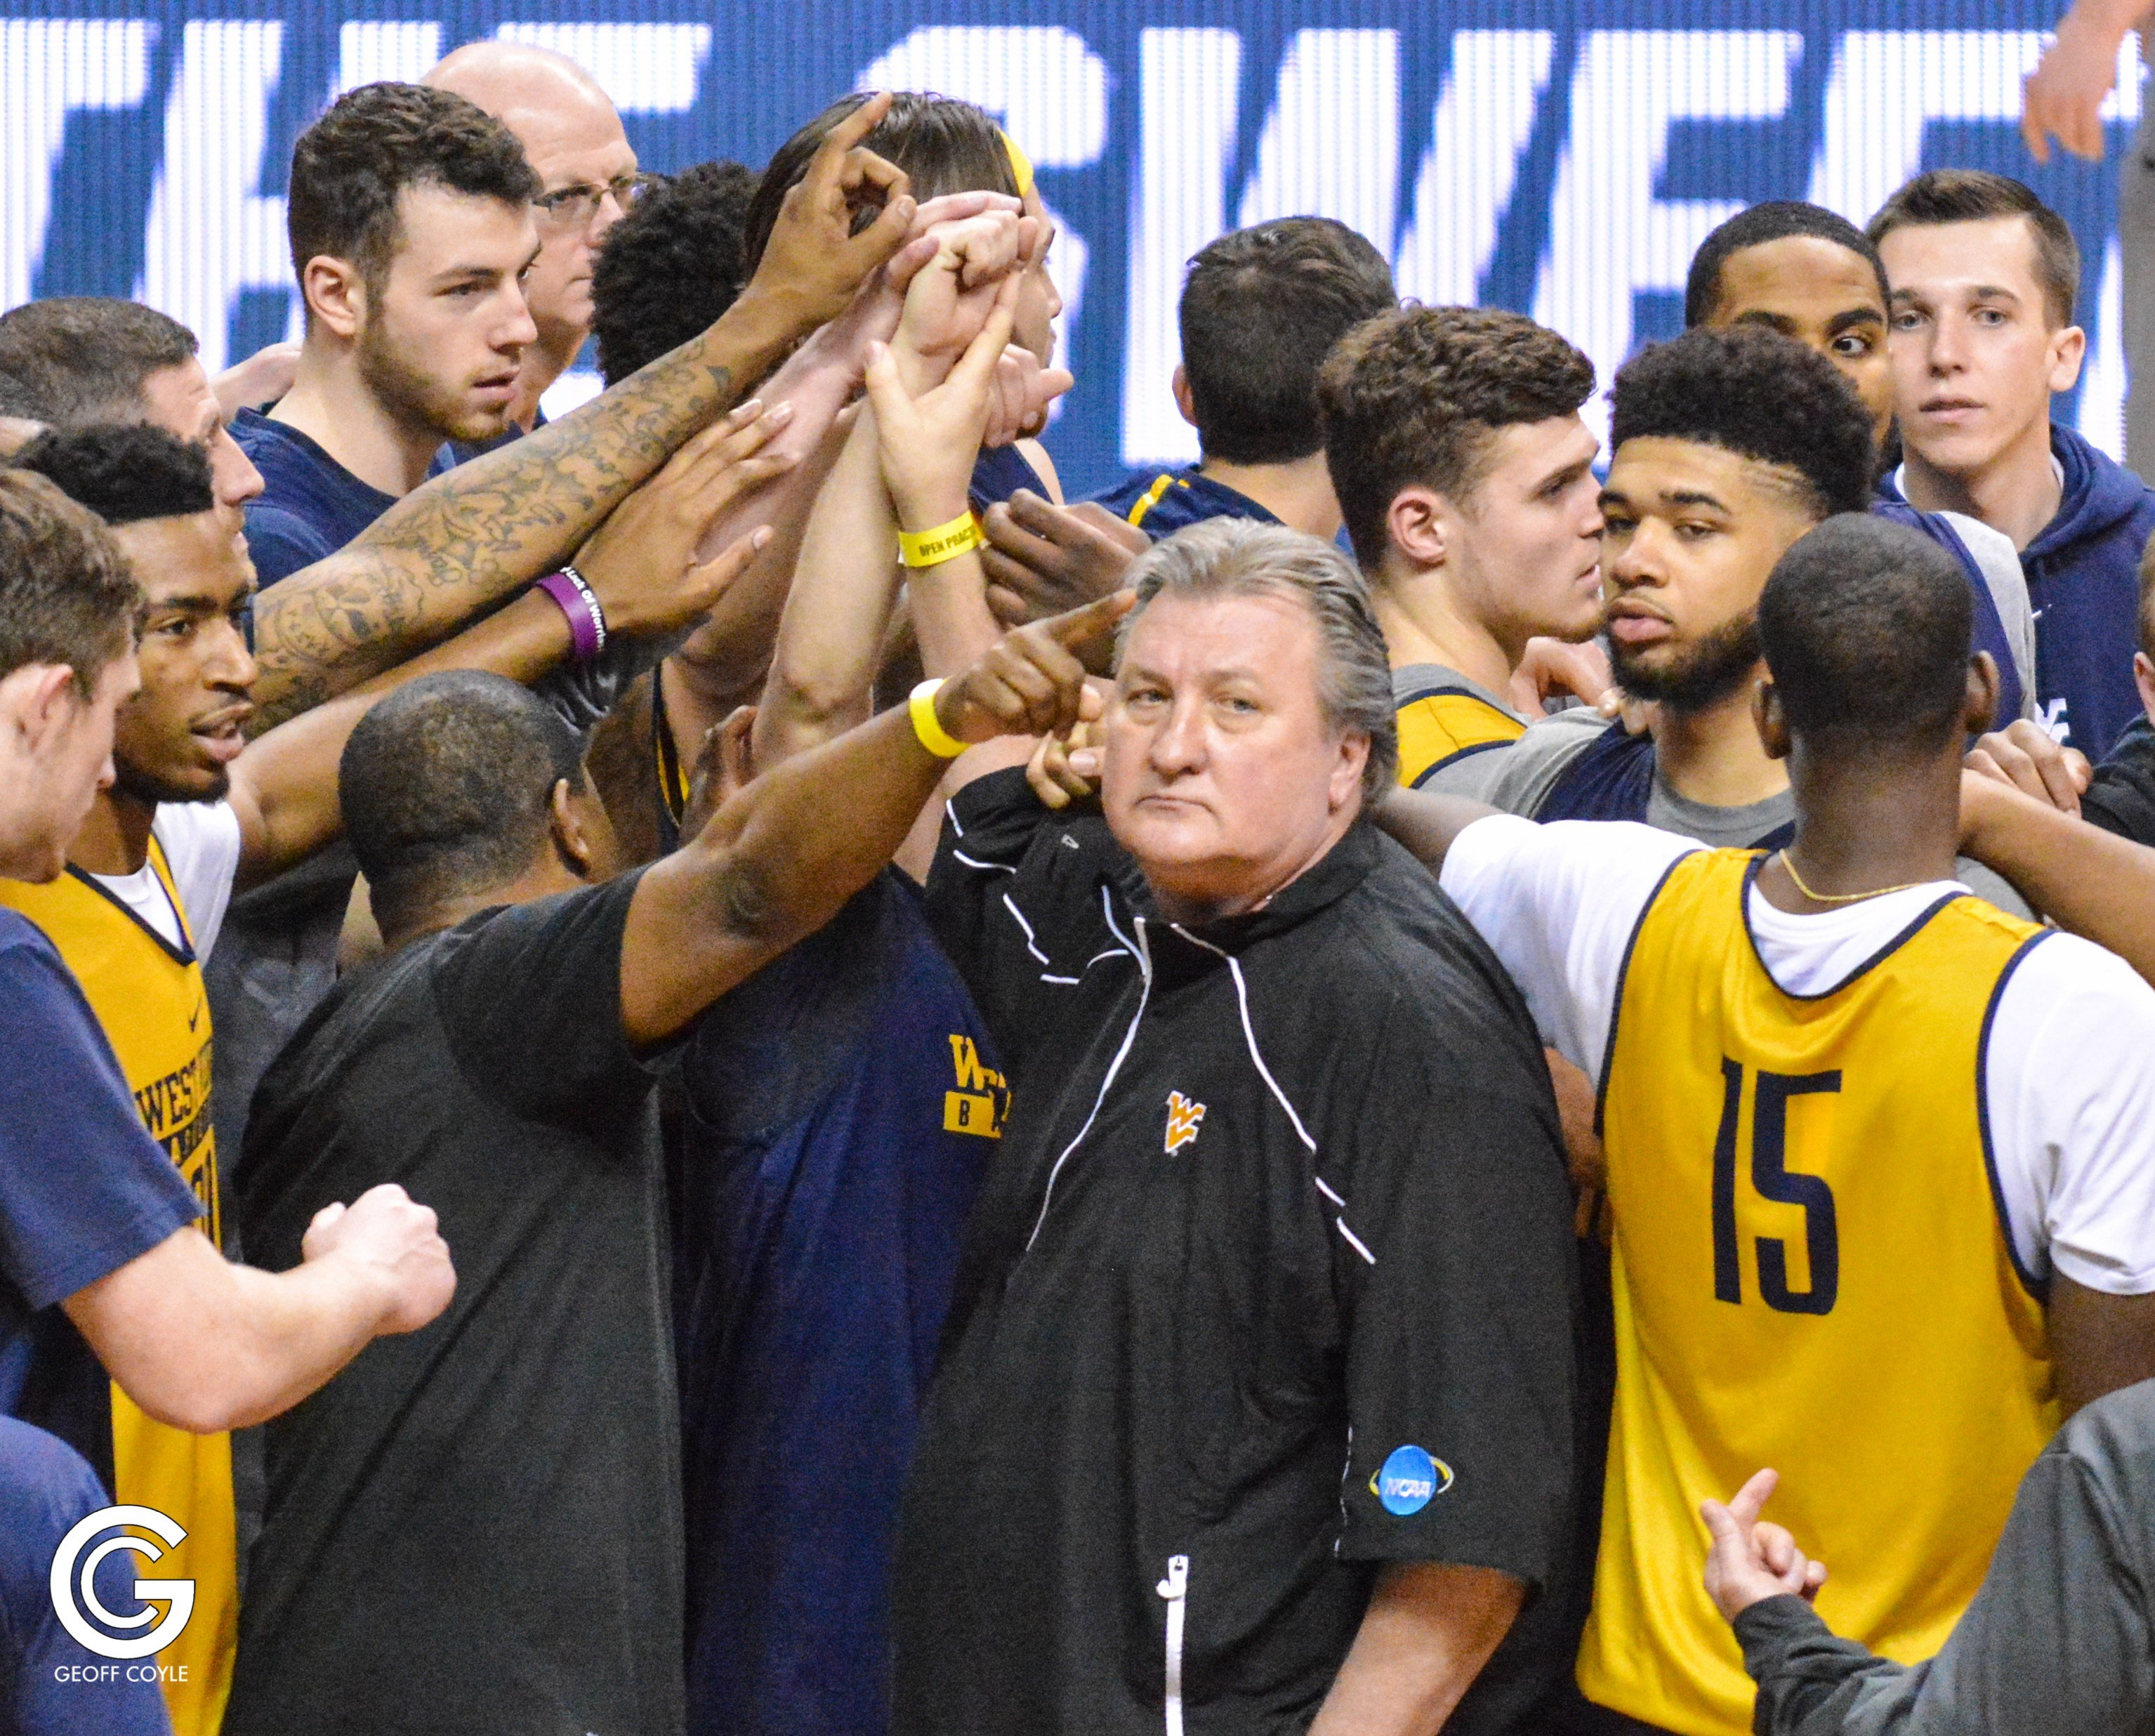 West Virginia takes on Gonzaga tonight at 7:39 ET in the Sweet Sixteen in San Jose, CA. (PHOTO: Geoff Coyle)